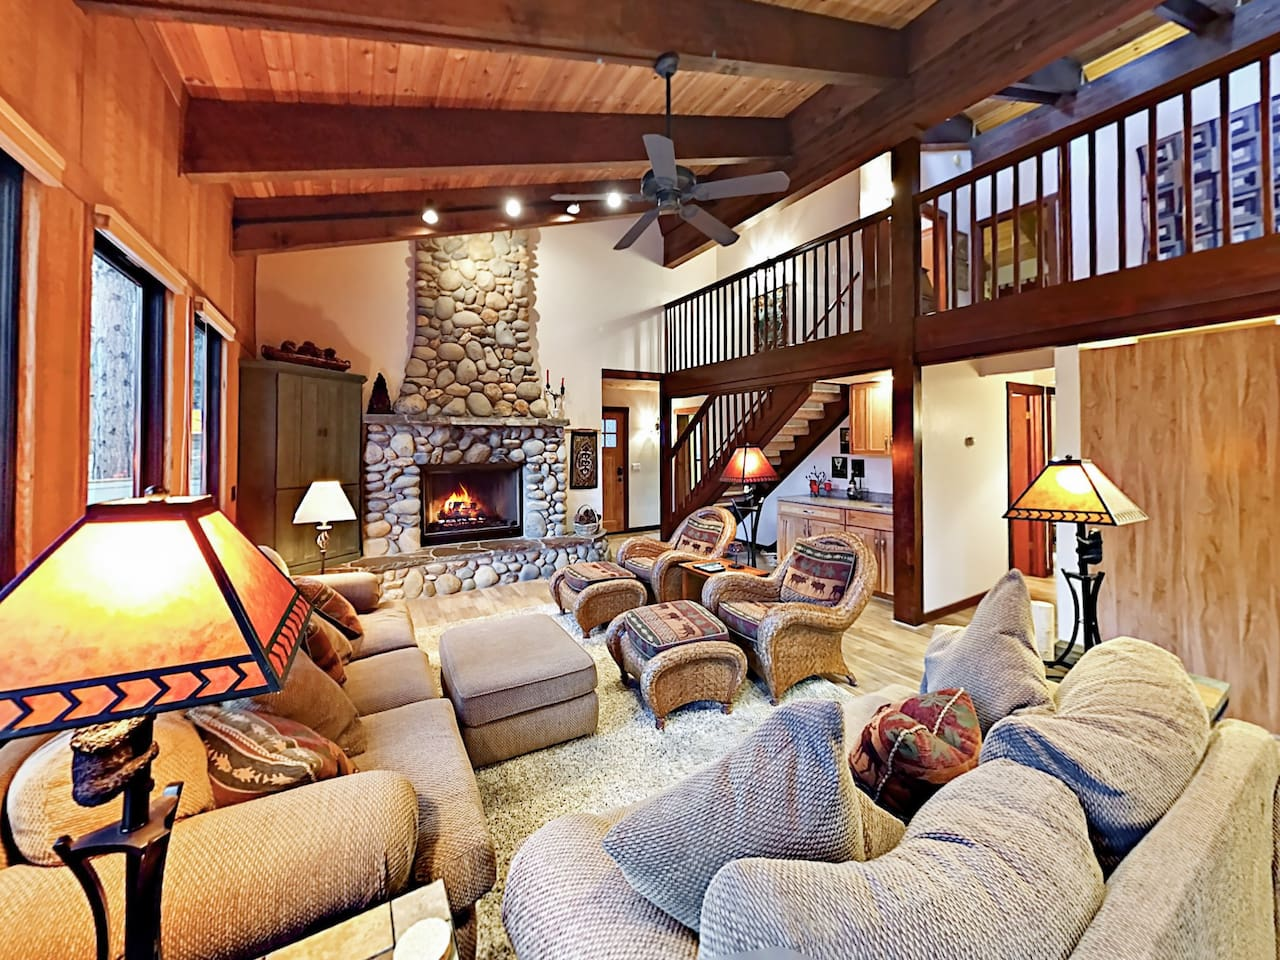 Welcome to Northstar! The living room has a warm mountain-lodge feel and a gas fireplace.